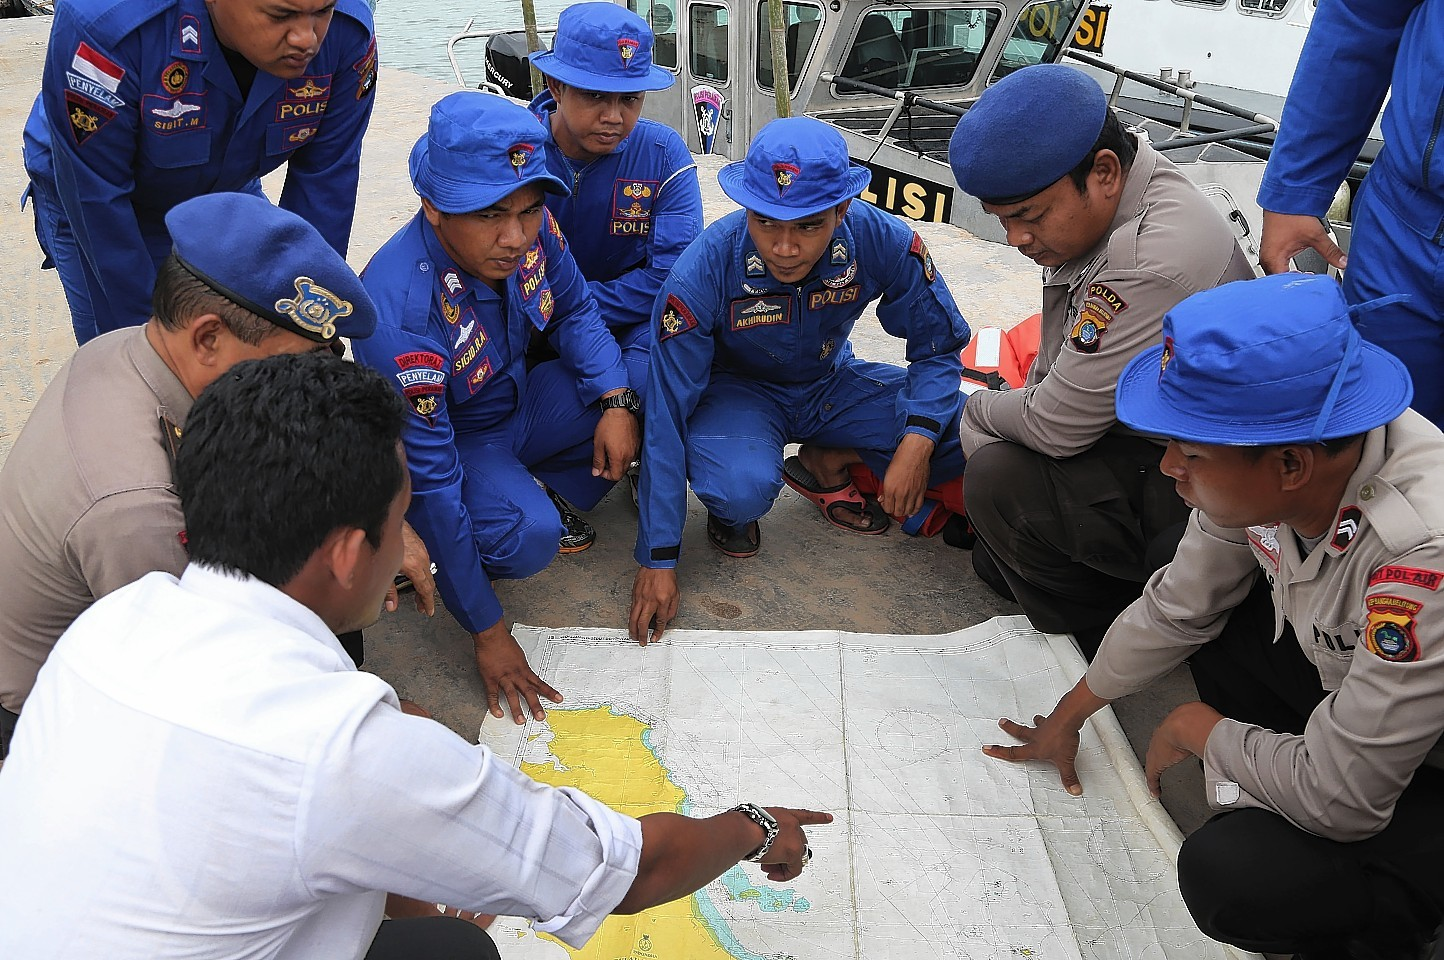 Members of Indonesia's Marine Police hold a briefing on board a search and rescue craft prior to their heading out to sea to search for the missing AirAsia flight QZ8501